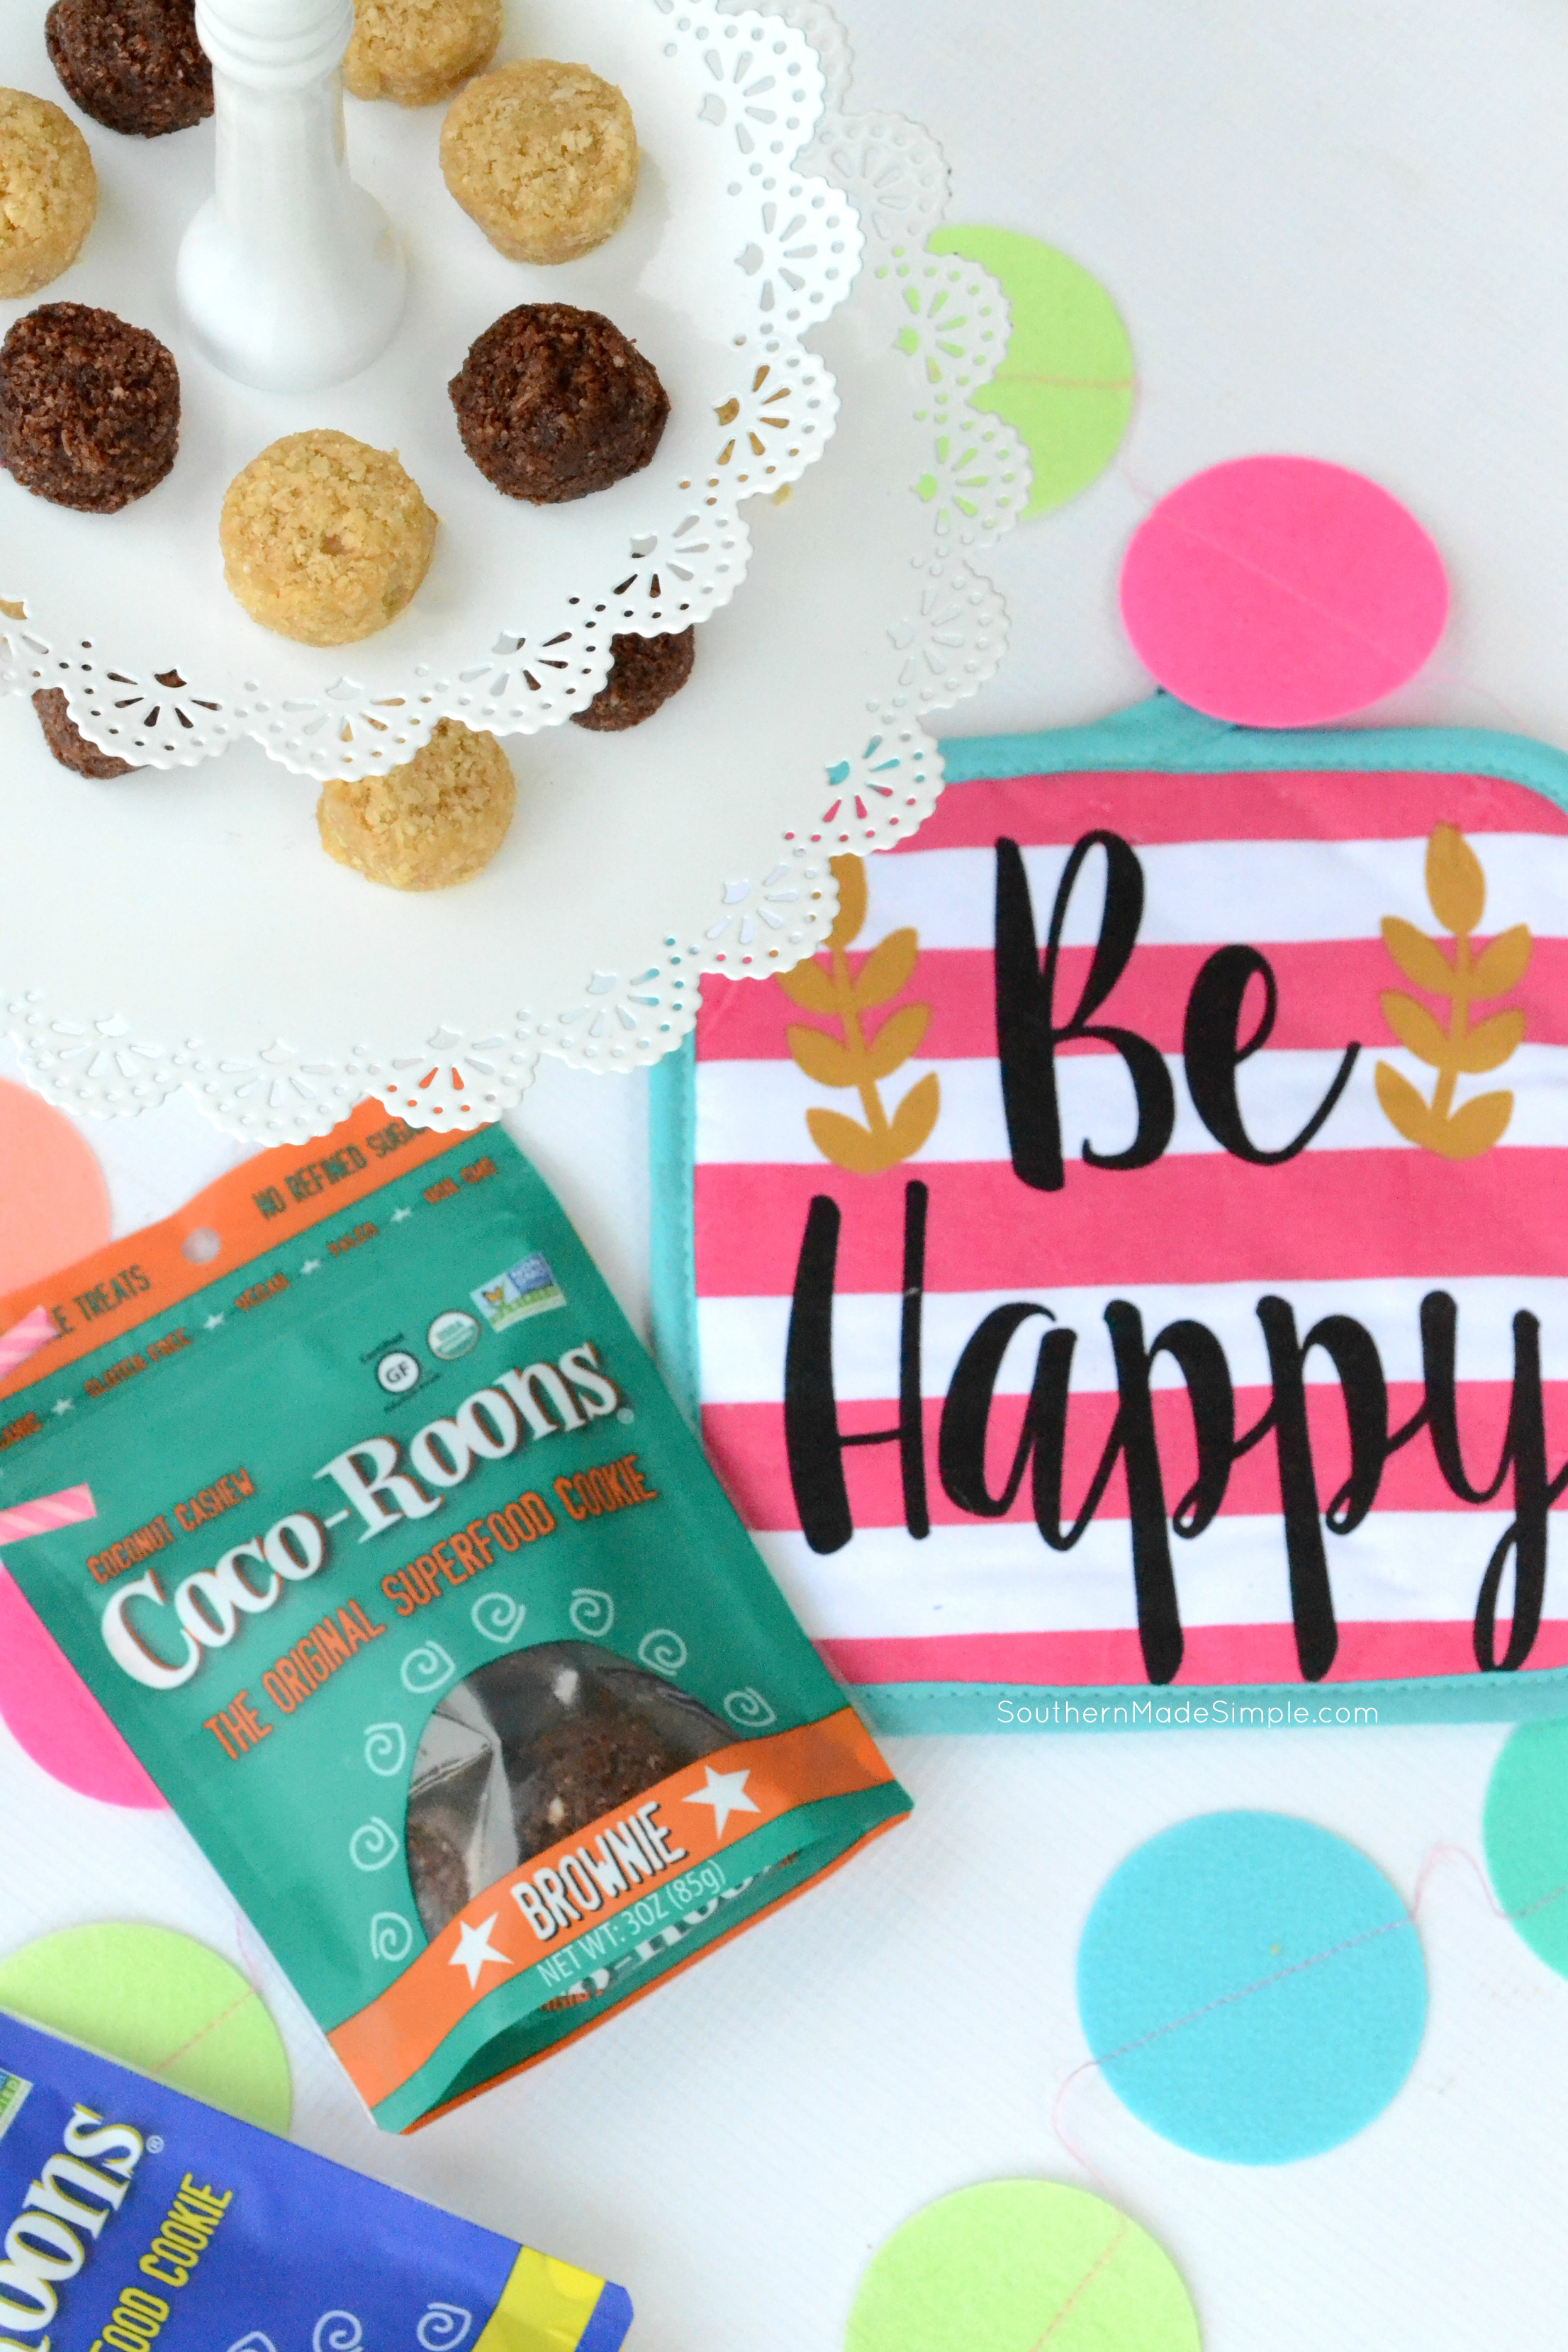 Looking for a little slice of guilt-free goodness to munch on? Sejoyia Coco-Roons are giving me total life, AND they're good for you! You can find them in the gluten free section at your local Walmart! #CoCoRoonsAtWalmart #Pmedia #ad